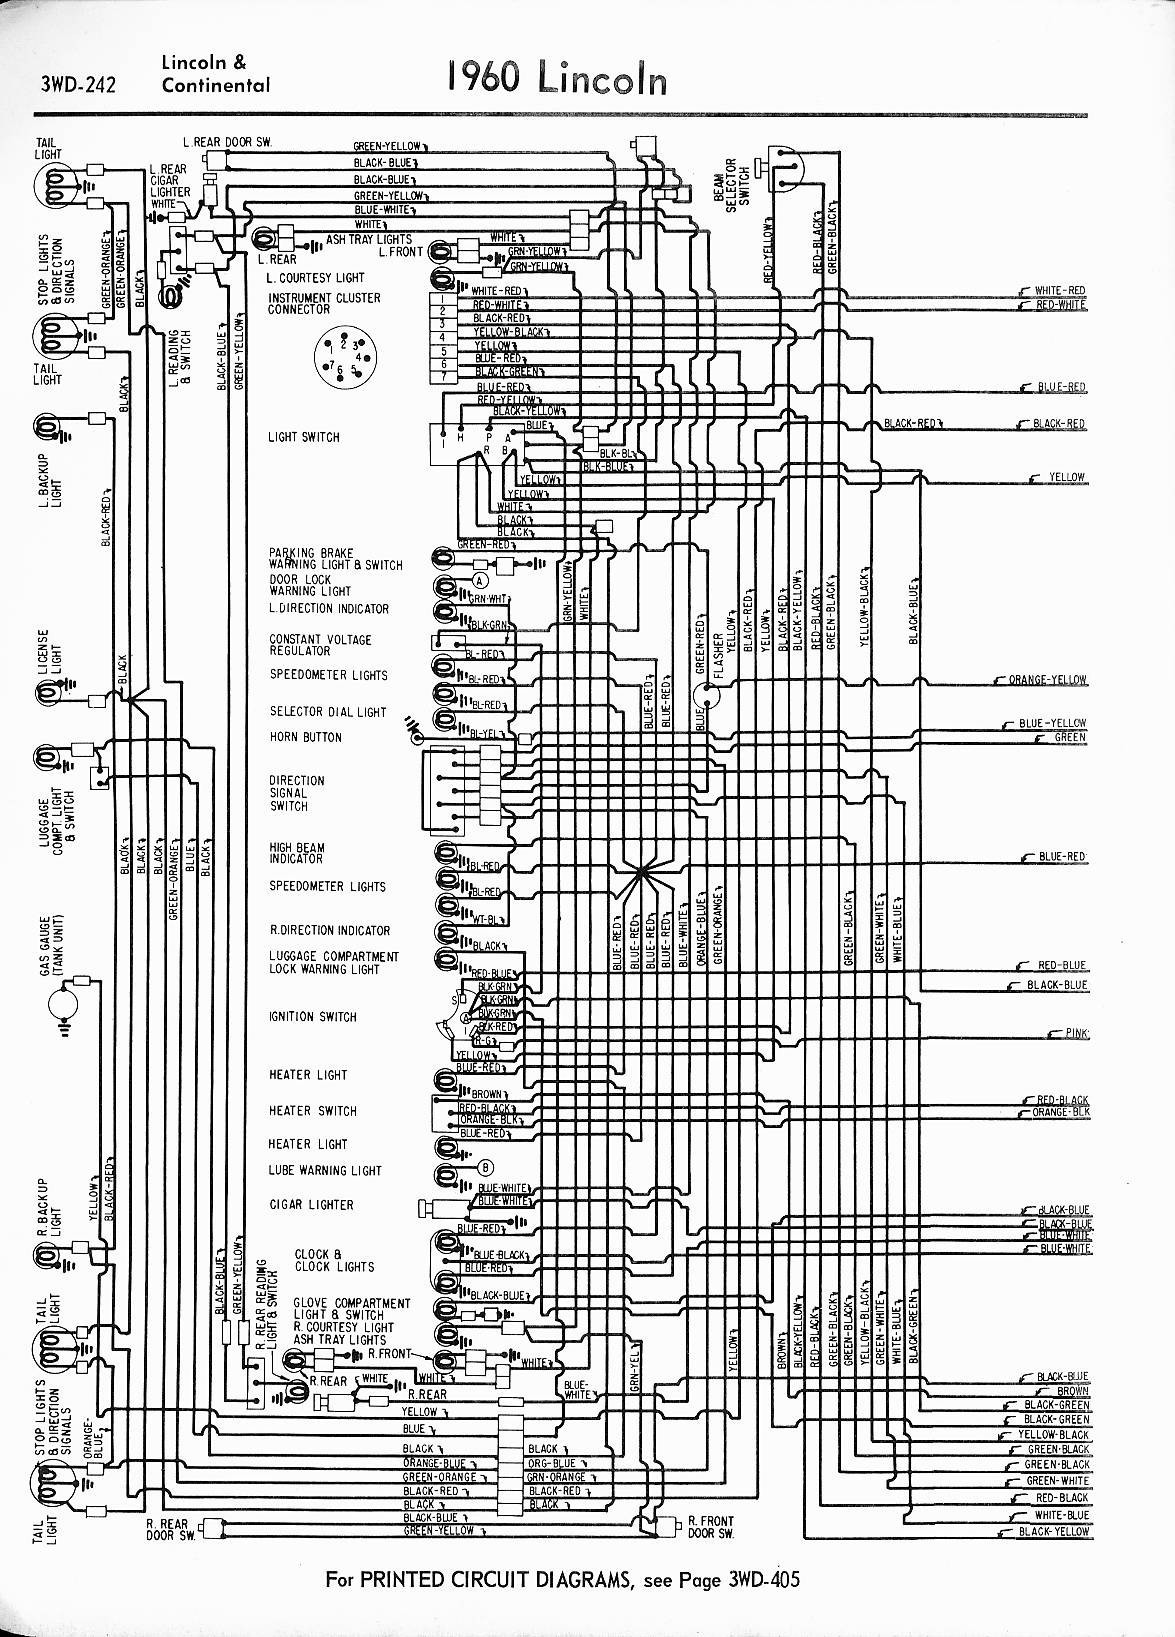 2001 Lincoln town Car Serpentine Belt Diagram Wiring Diagram 2001 Lincoln Ls Rear Worksheet and Wiring Diagram • Of 2001 Lincoln town Car Serpentine Belt Diagram